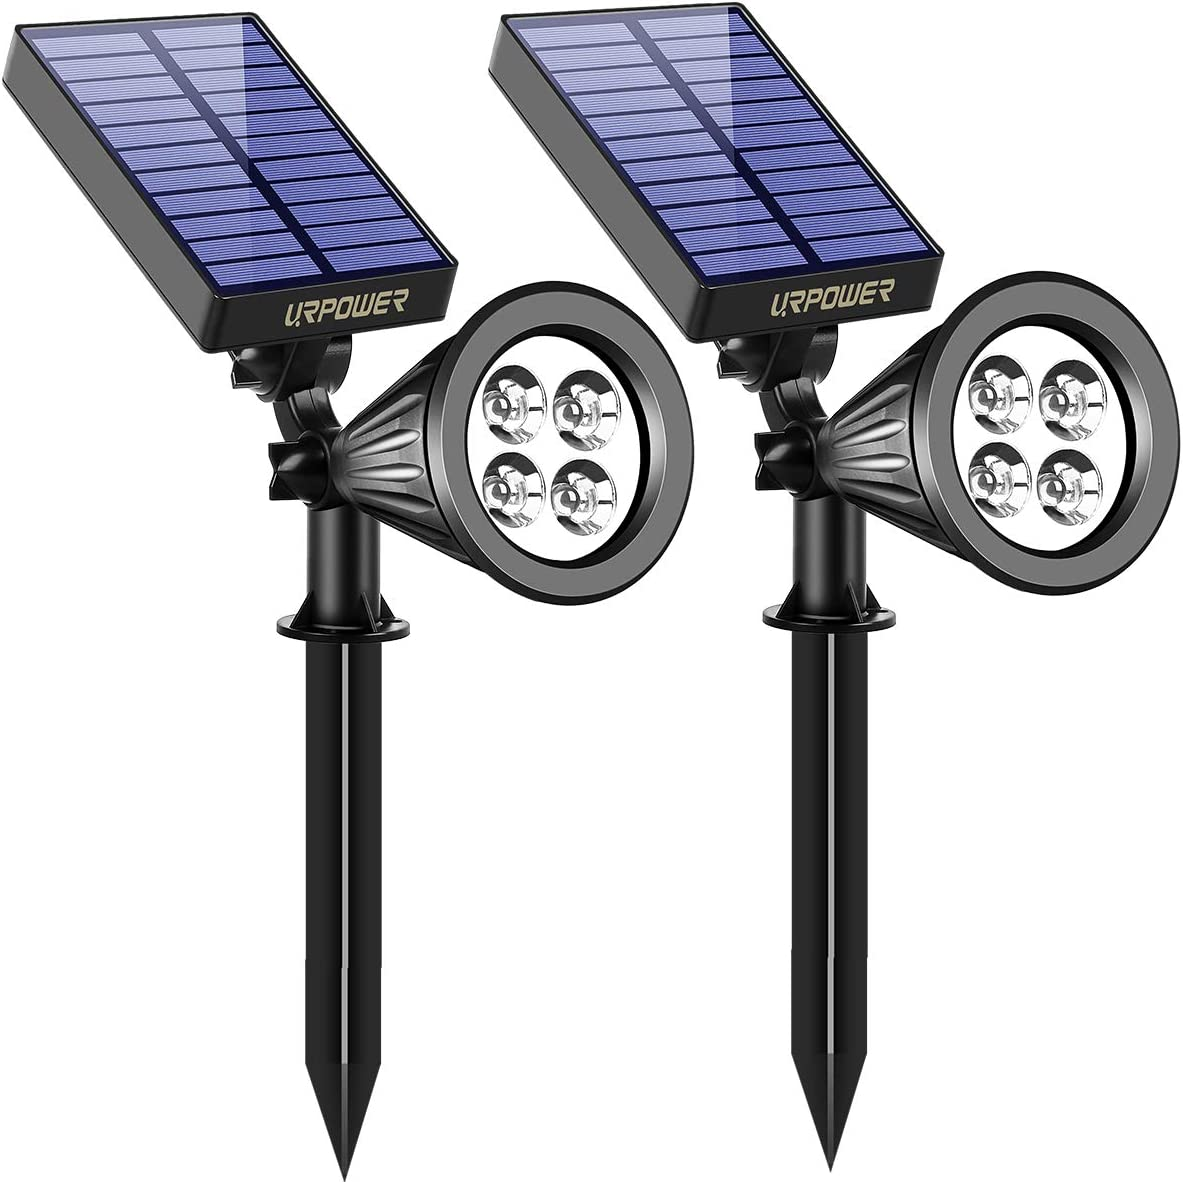 URPOWER Solar Lights, 2-in-1 Waterproof 4 LED Solar Spotlight Adjustable Wall Light Landscape Light Security Lighting Dark Sensing Auto On Off for Patio Deck Yard Garden Driveway Pool Area 2 Pack